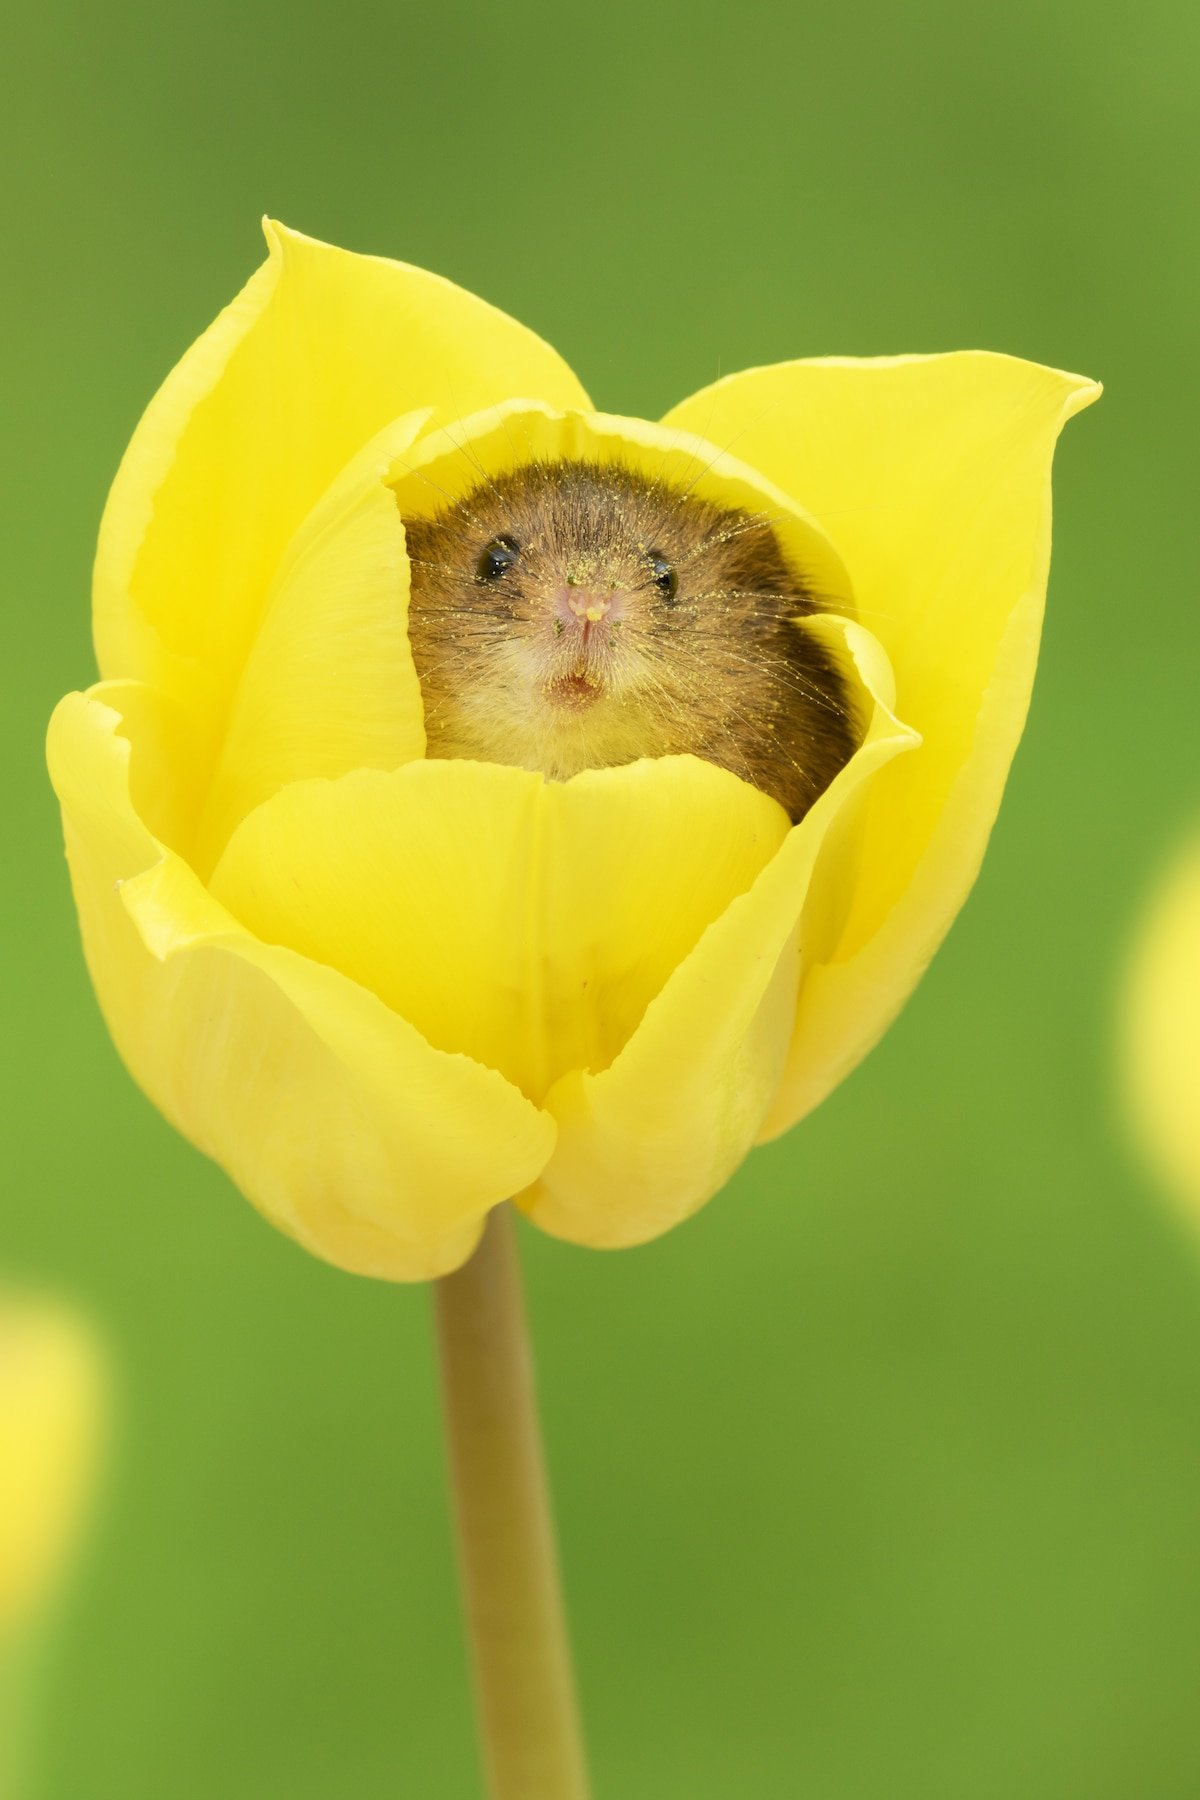 Cute Mouse in a Flower